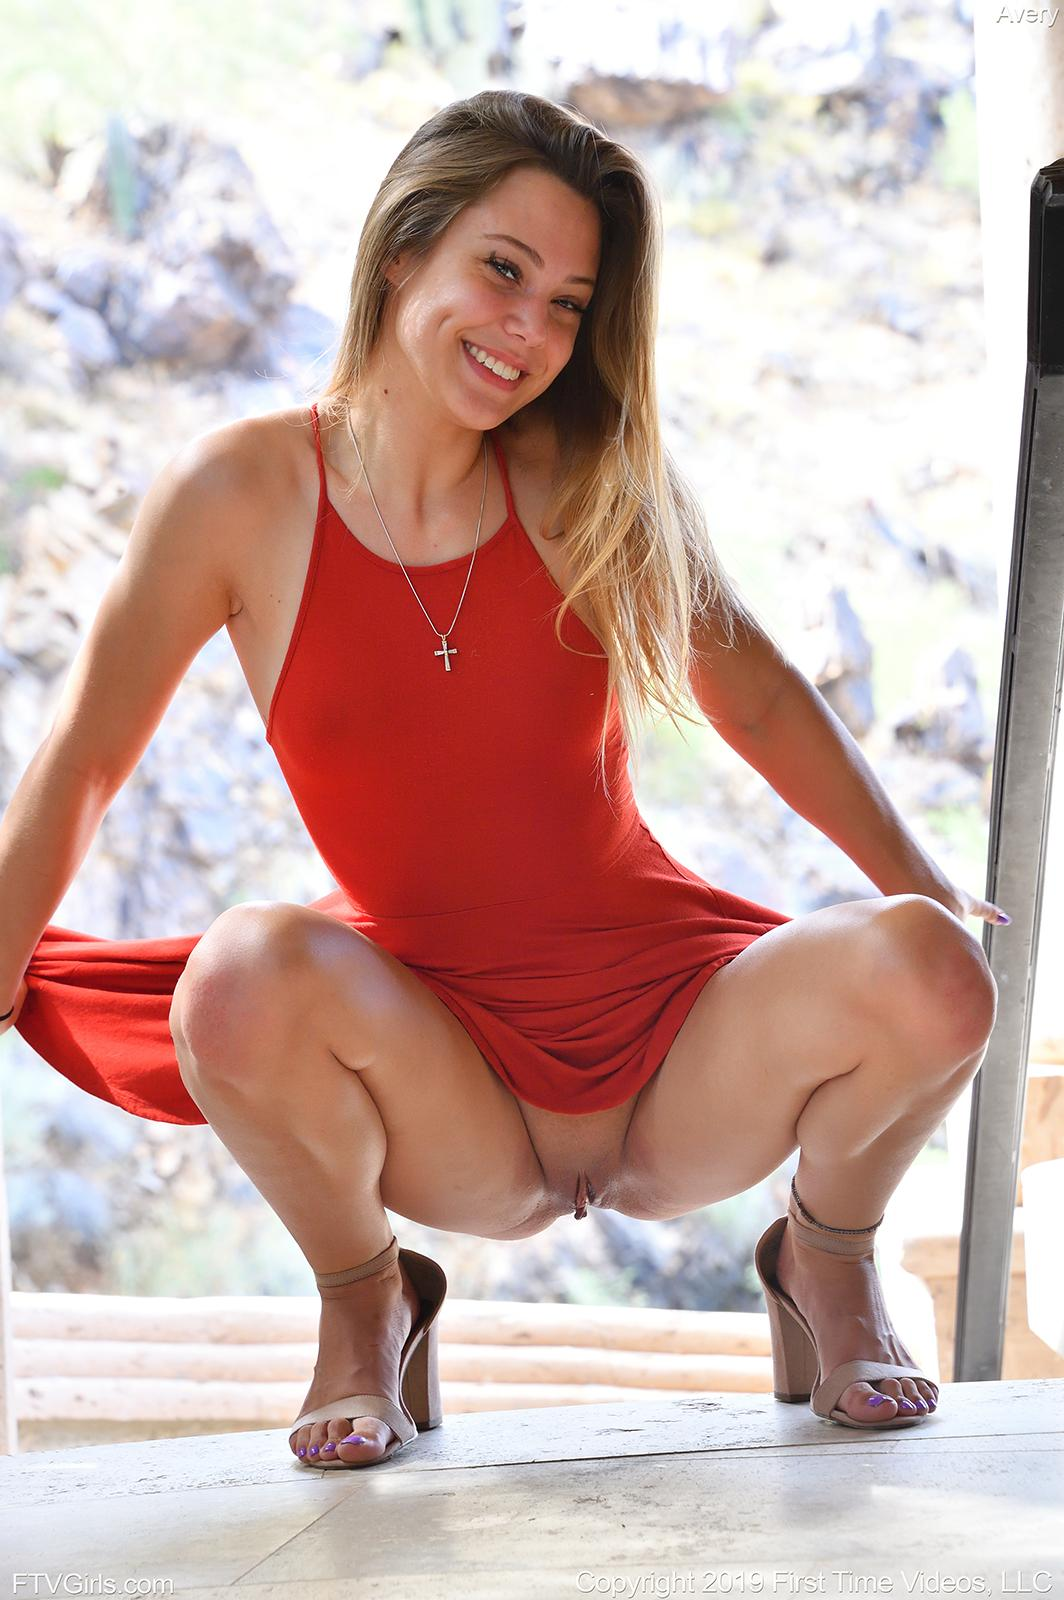 Avery FTV Gorgeous In Red | Coed Cherry